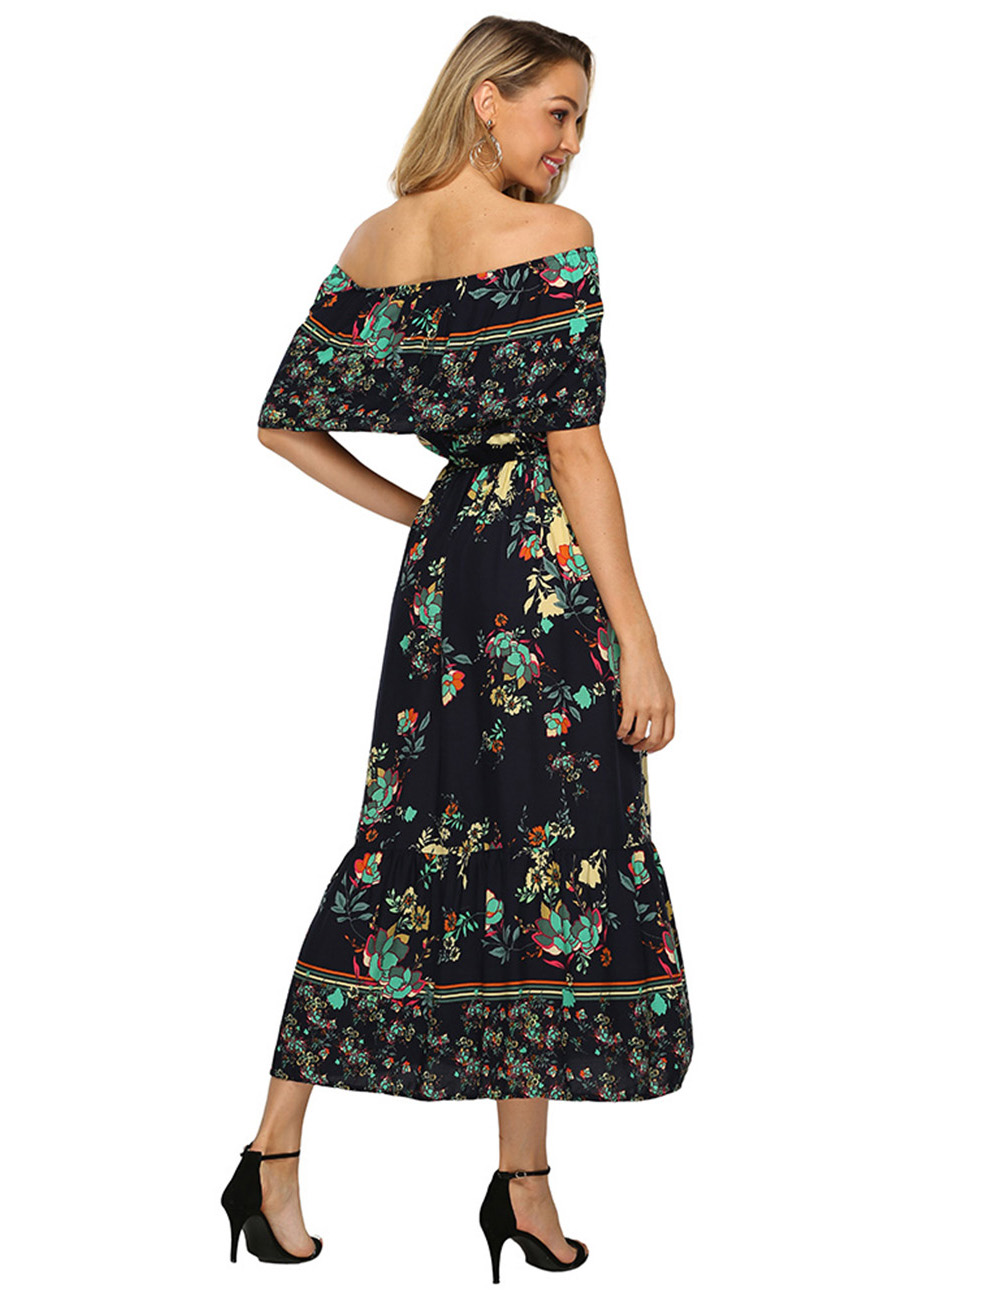 //cdn.affectcloud.com/hexinfashion/upload/imgs/Dress/Maxi_Dress/VZ190100-M01/VZ190100-M01-201911065dc2a428e51e7.jpg